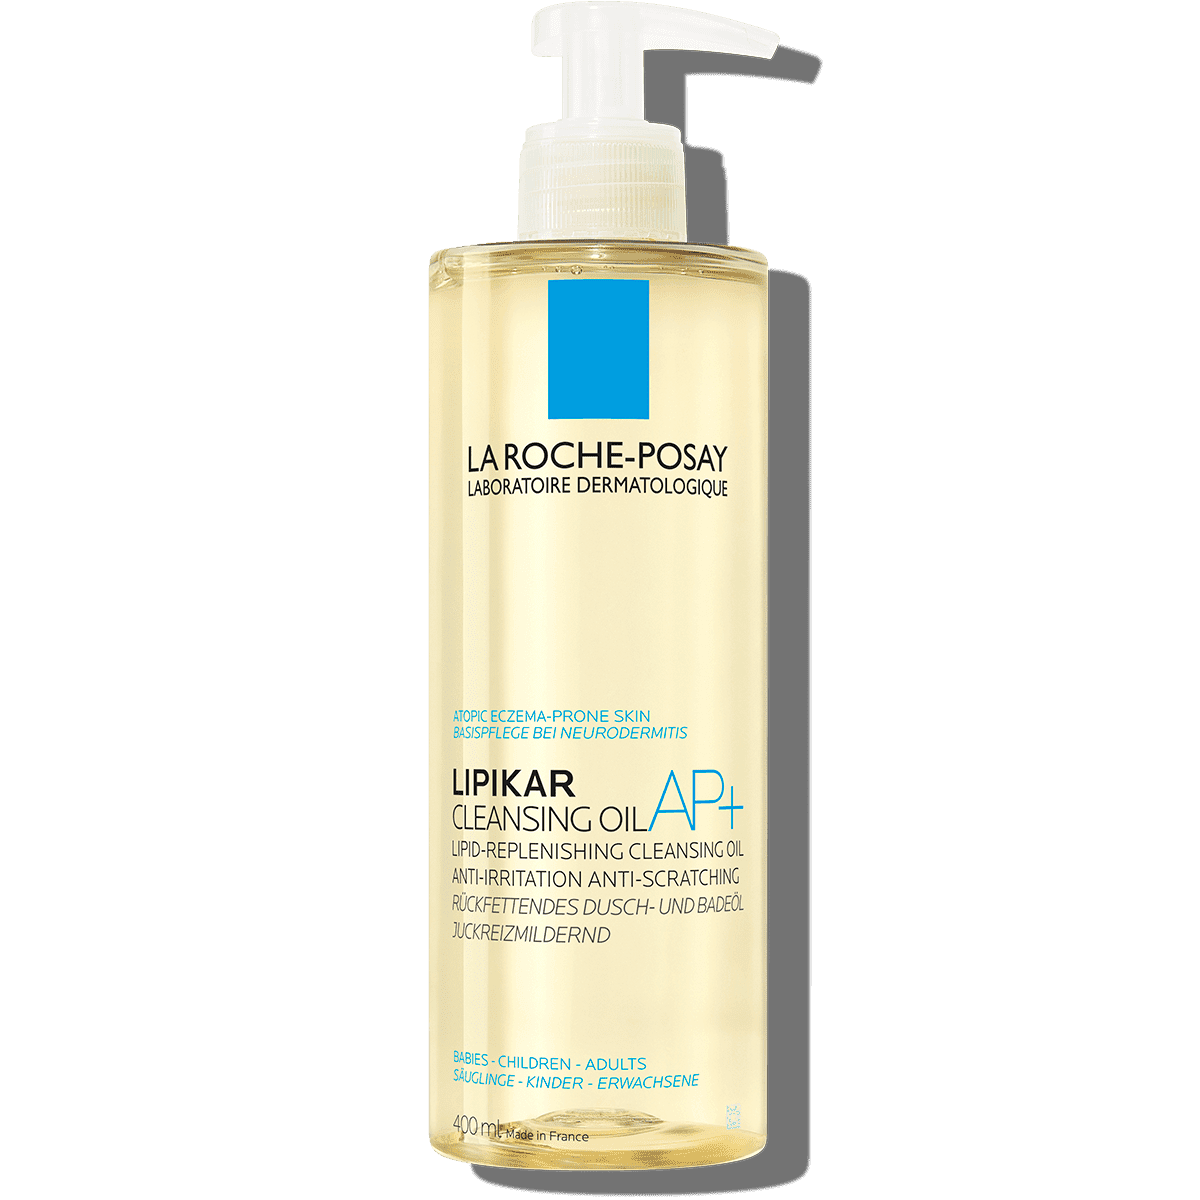 Larocheposay ProductPage Eczema Lipikar Cleansing Oil AP 400ml 3337875